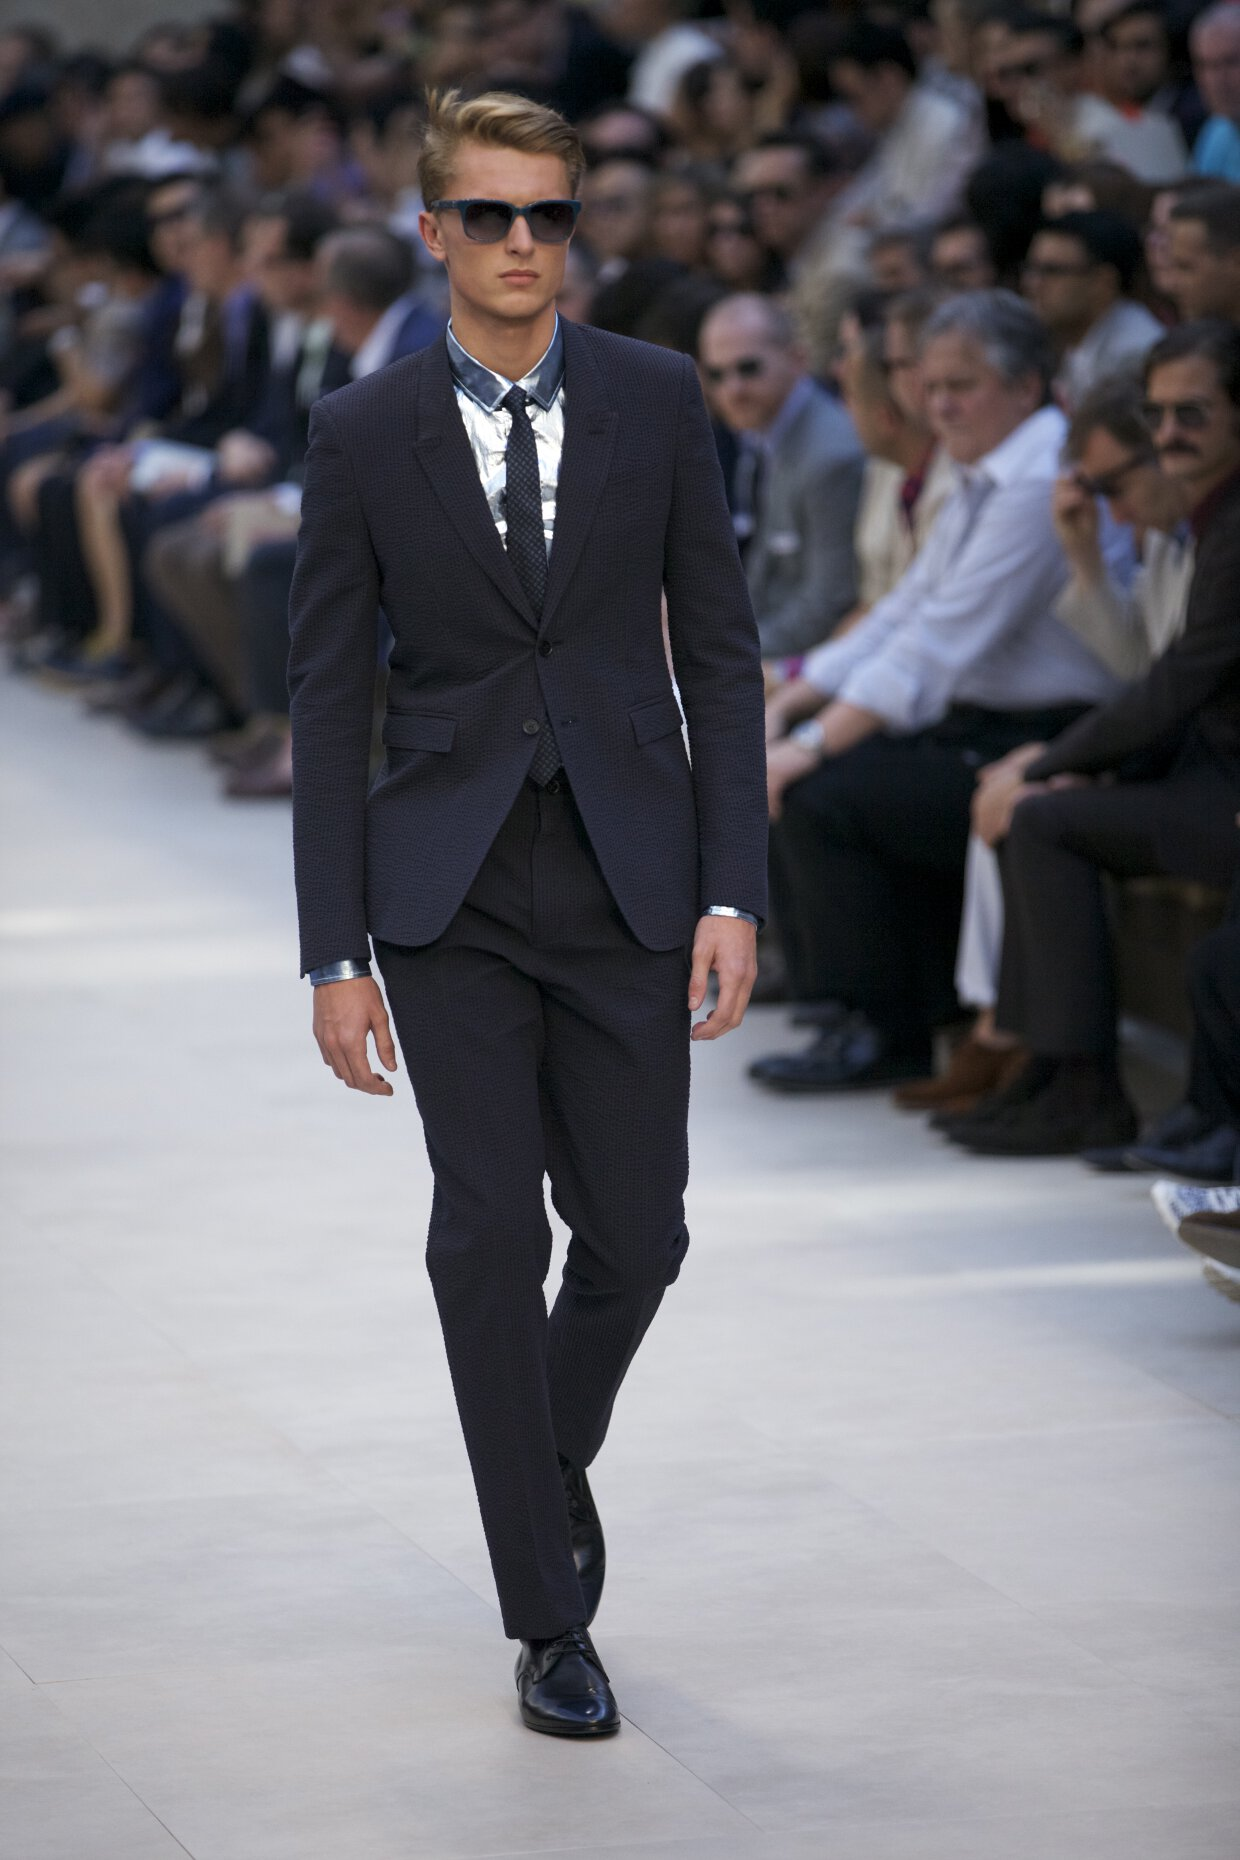 Burberry Prorsum Spring Summer 2013 Men Collection Milano Fashion Week Burberry Prorsum 2013 Spring Summer